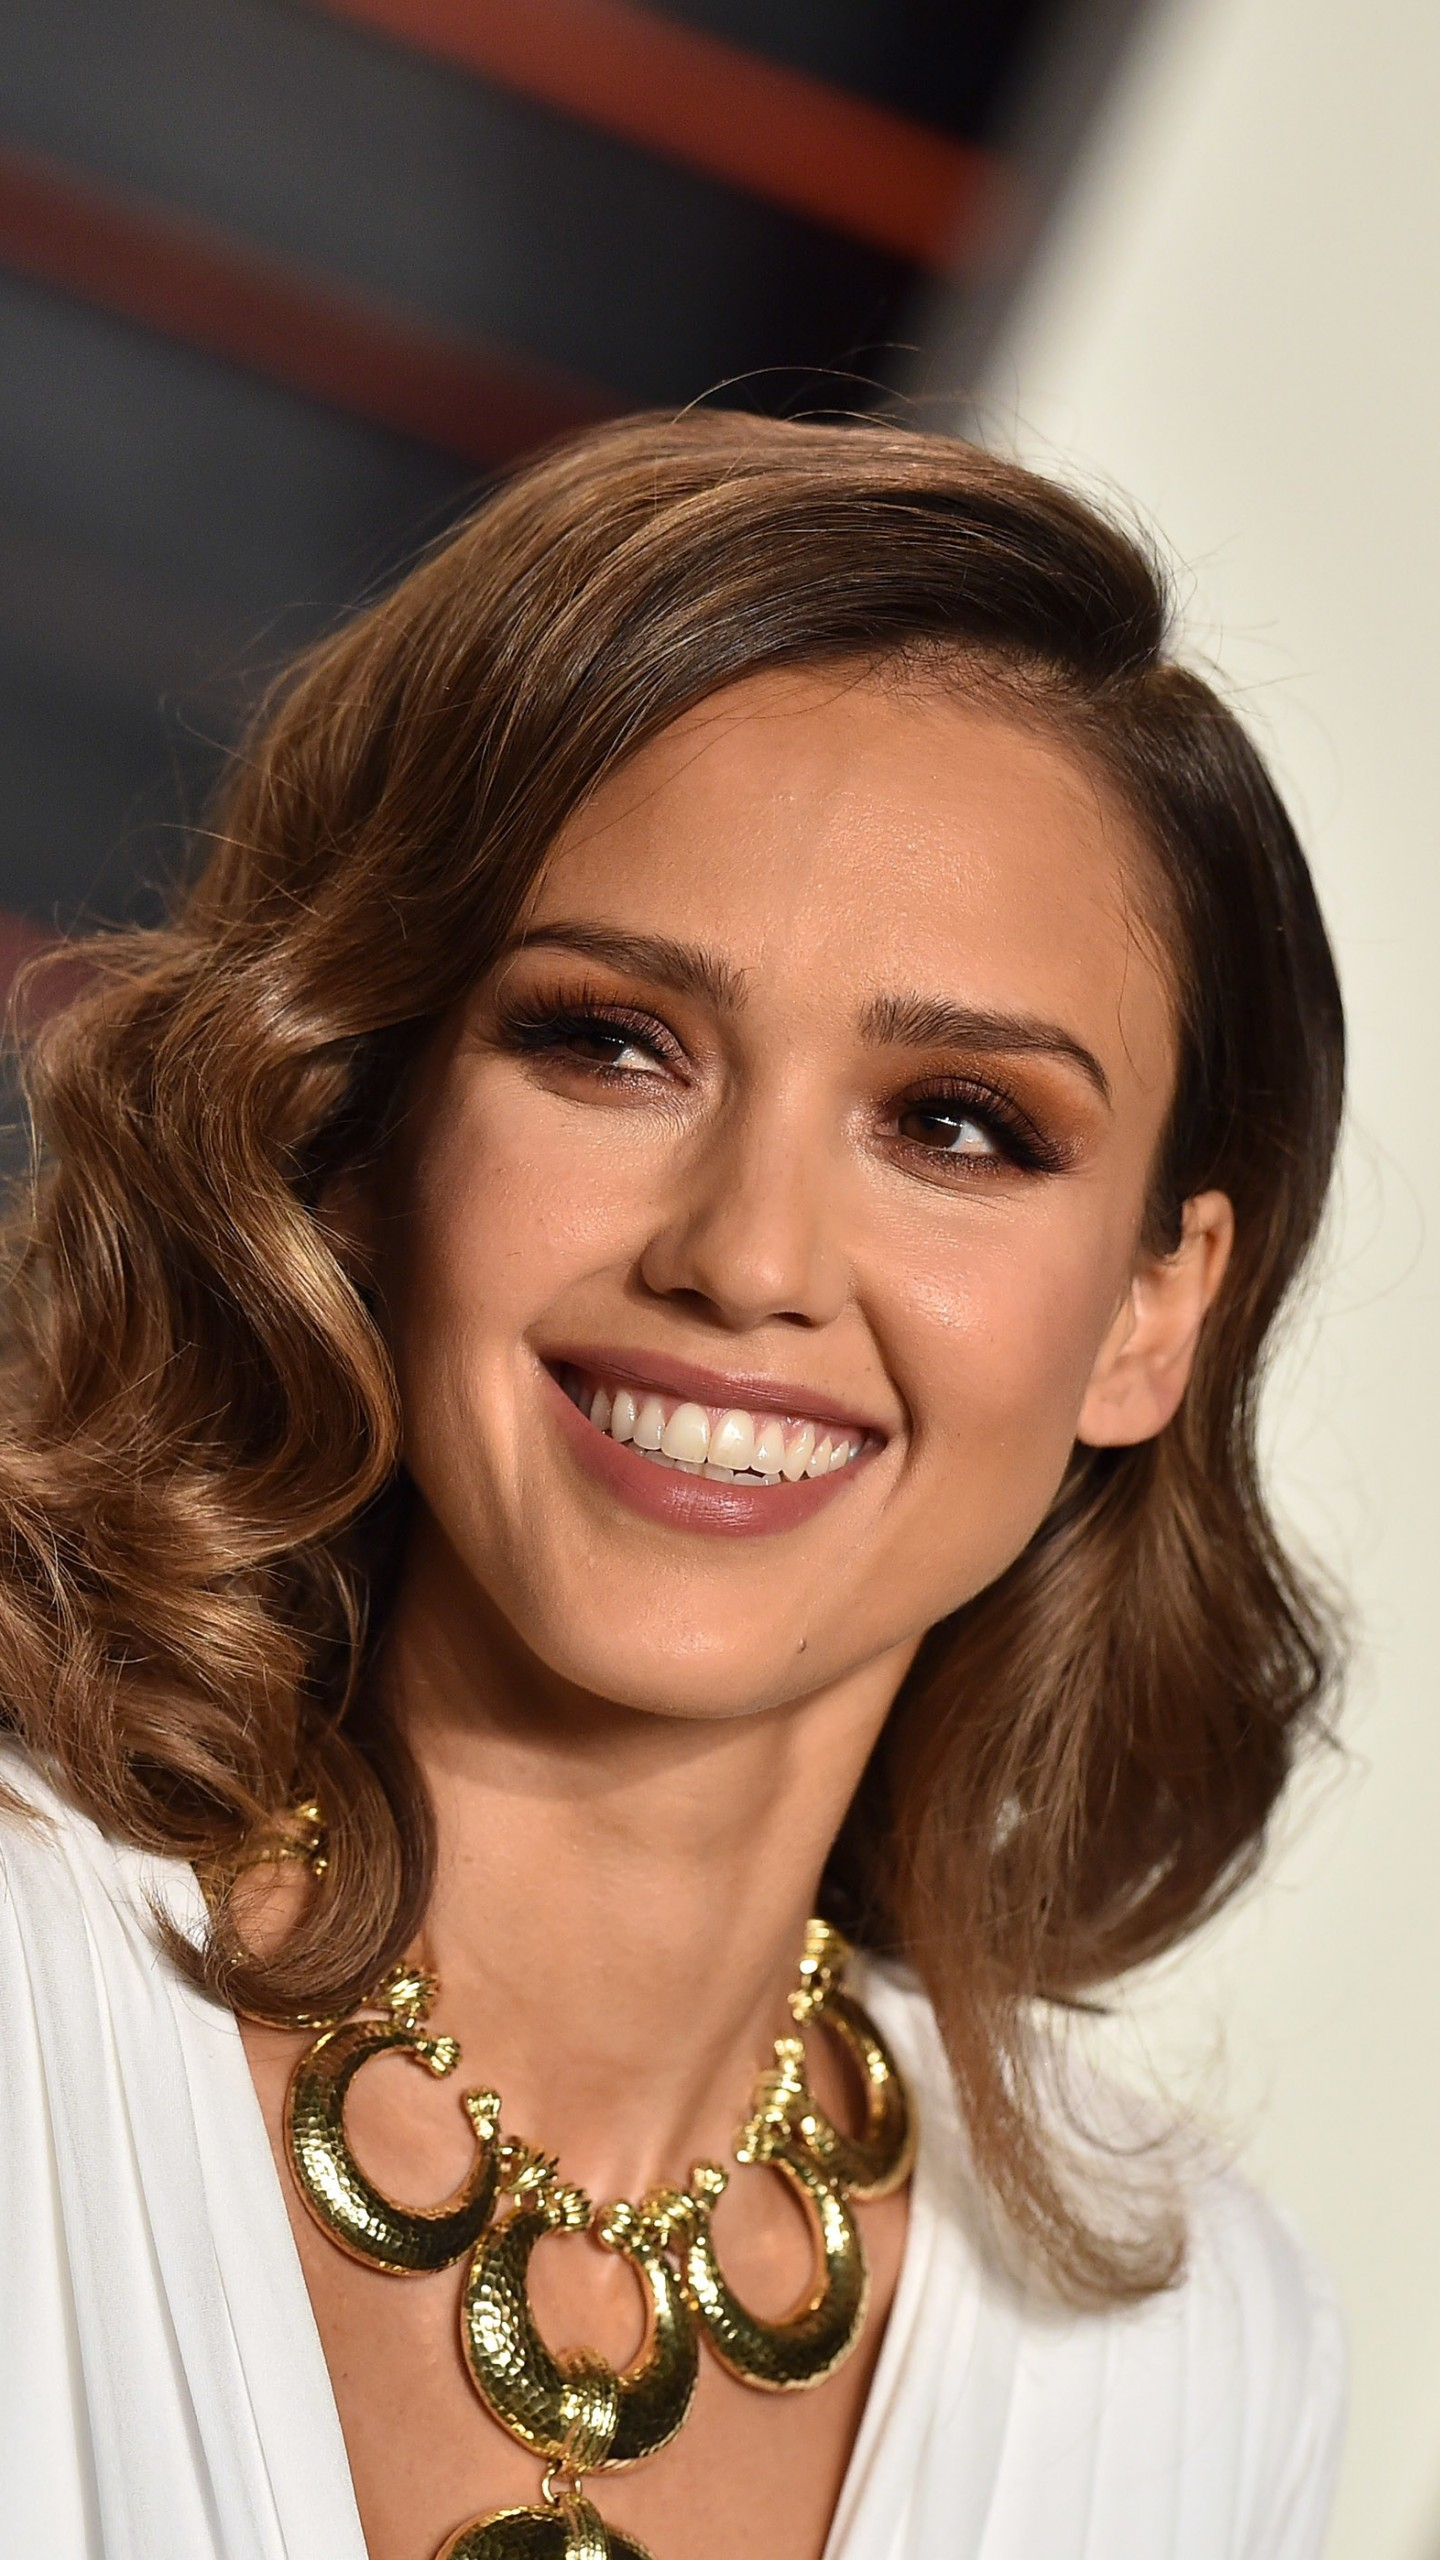 Most Popular Teen Girl Hairstyles: Wallpaper Jessica Alba, Most Popular Celebs In 2015